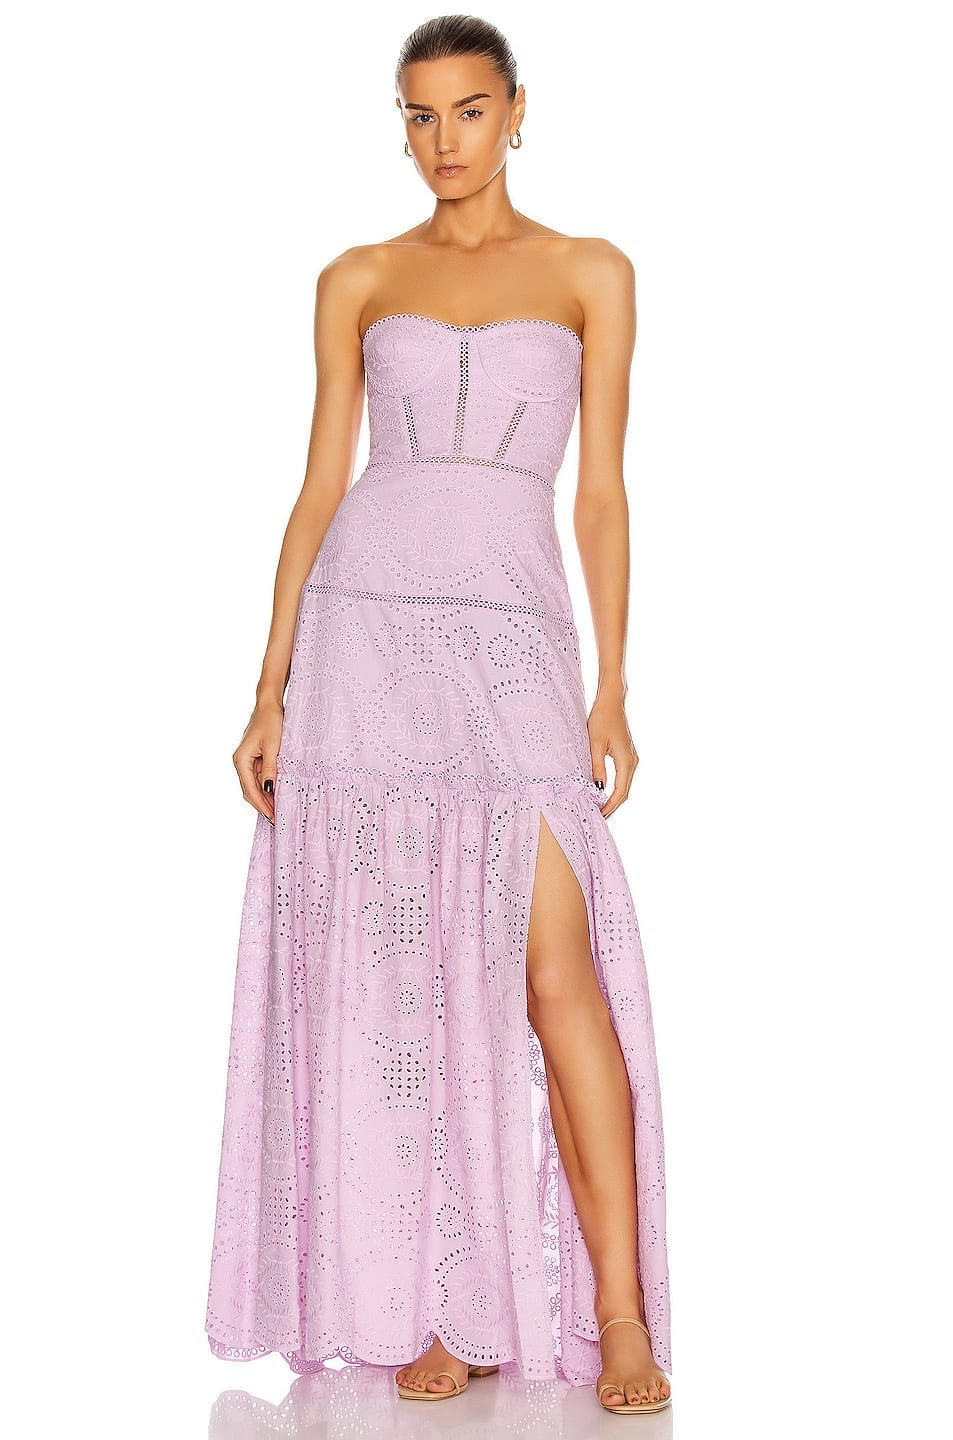 JONATHAN SIMKHAI Juliette Bustier Dress